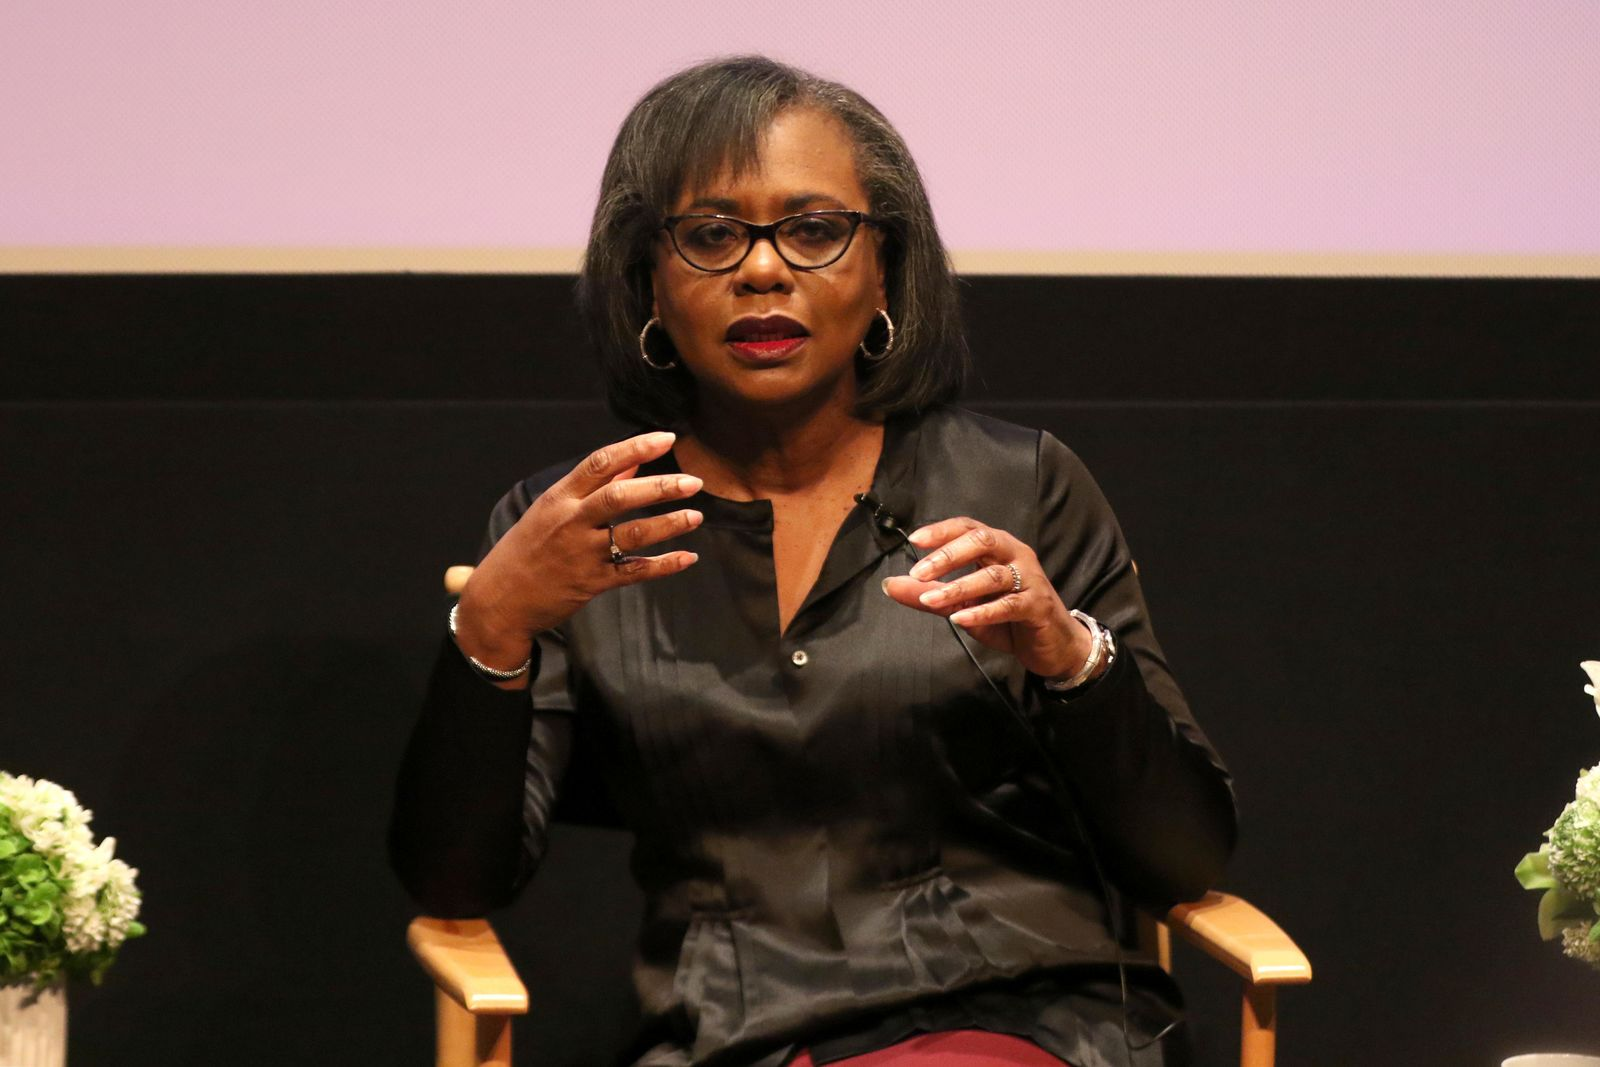 Anita Hill speaks at a discussion about sexual harassment and how to create lasting change from the scandal roiling Hollywood at United Talent Agency on Friday, Dec. 8, 2017, in Beverly Hills, Calif. (Photo by Willy Sanjuan/Invision/AP)